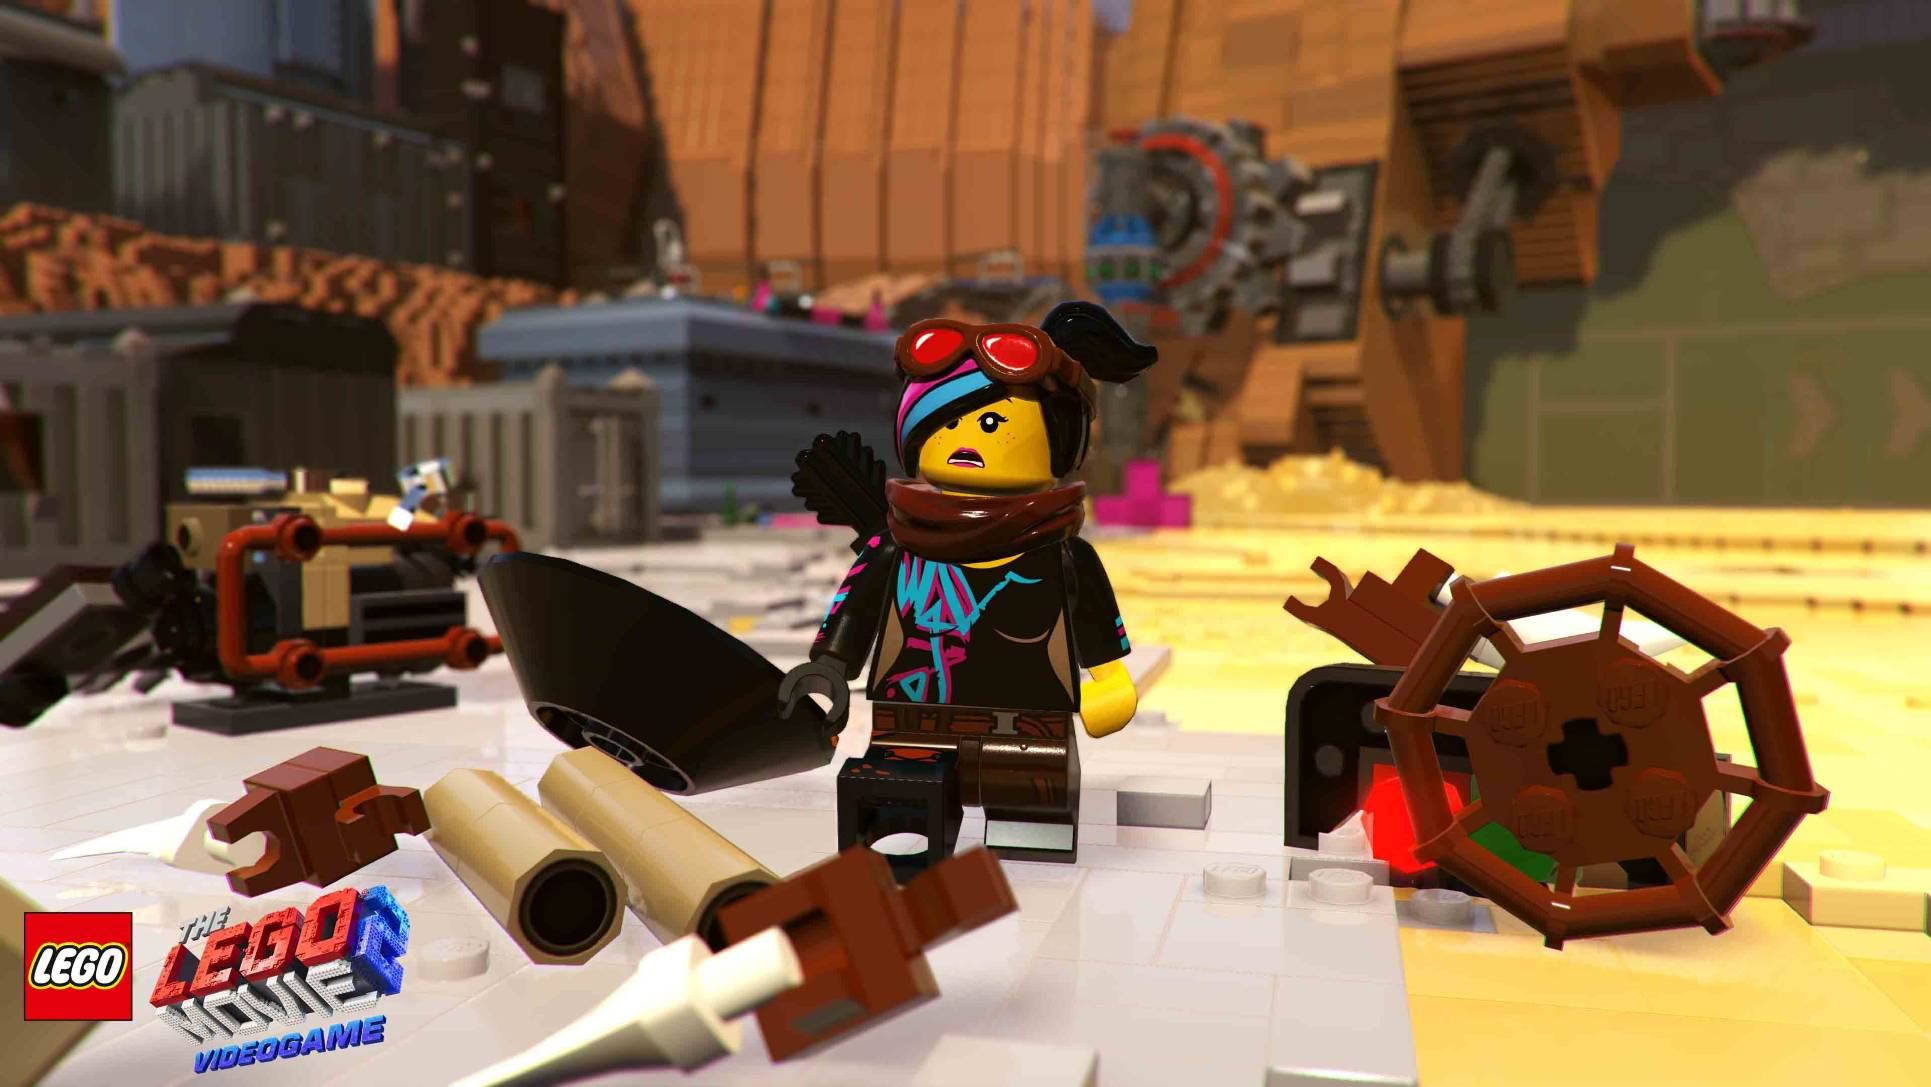 The_LEGO_Movie_2_Videogame_Launch_Screenshot_3_1551176603